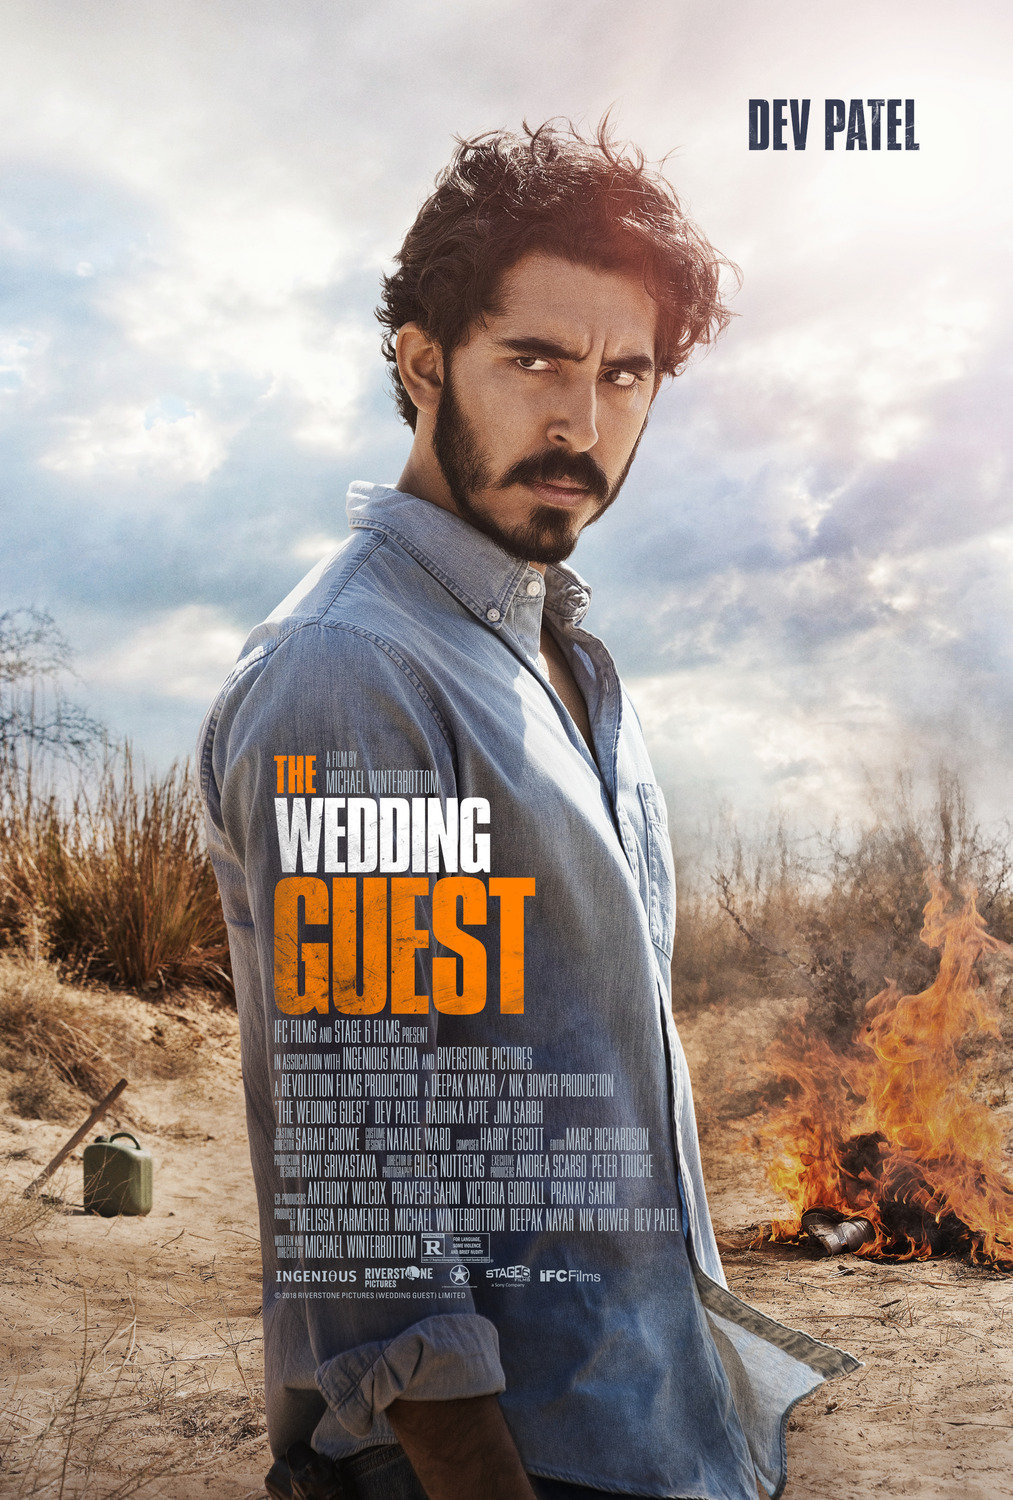 The Wedding Guest poster image